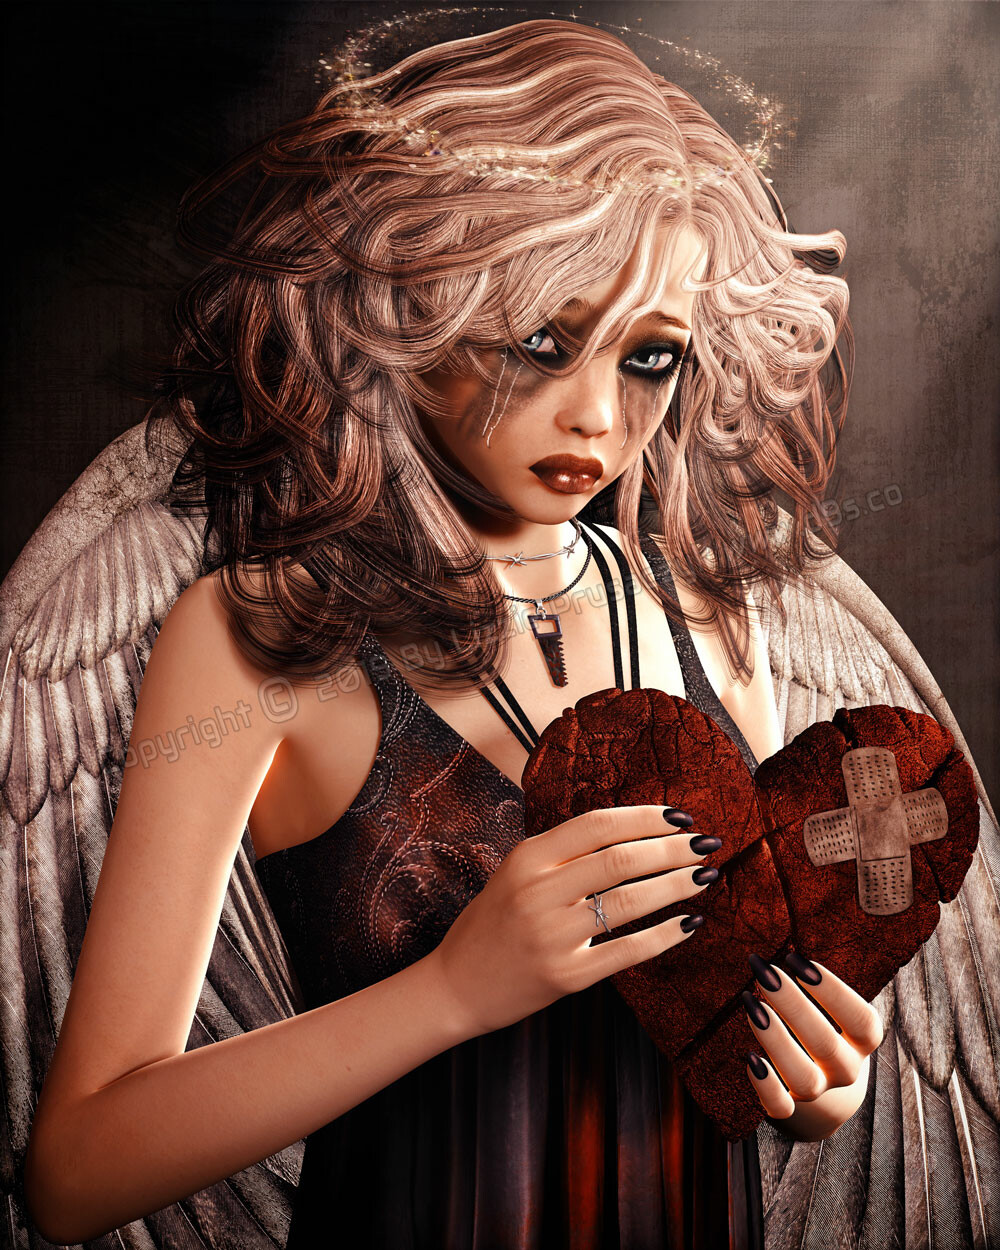 An innocent angel has had her heart broken. The pain is so deep that nothing hurts now as her heart begins to mend.